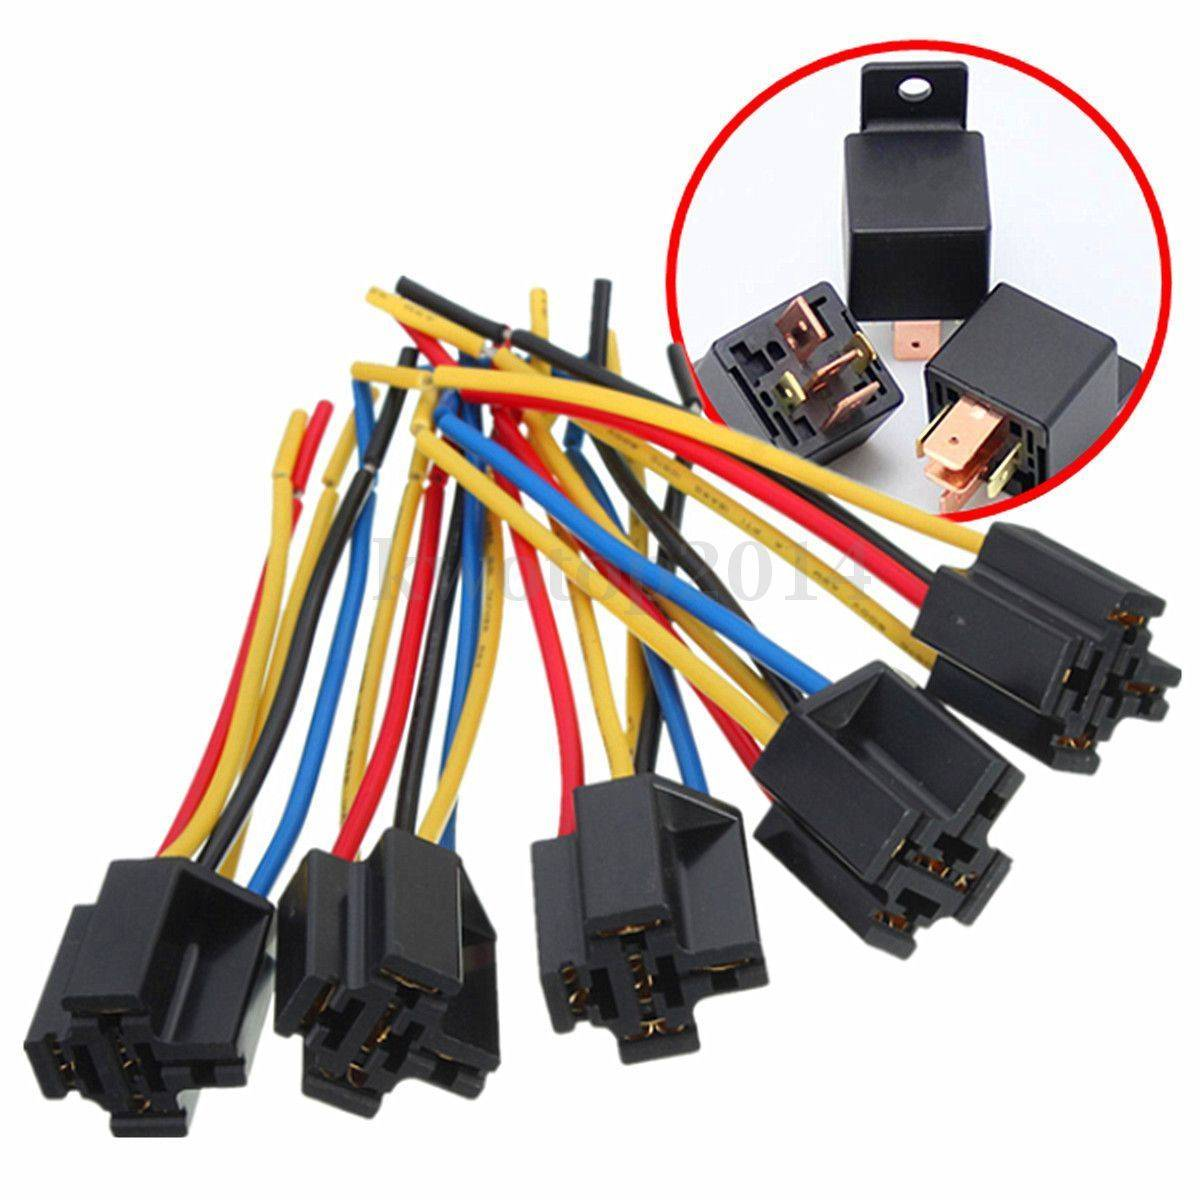 ODM OEM RoHS compliance 6 pin electric wire harness conector